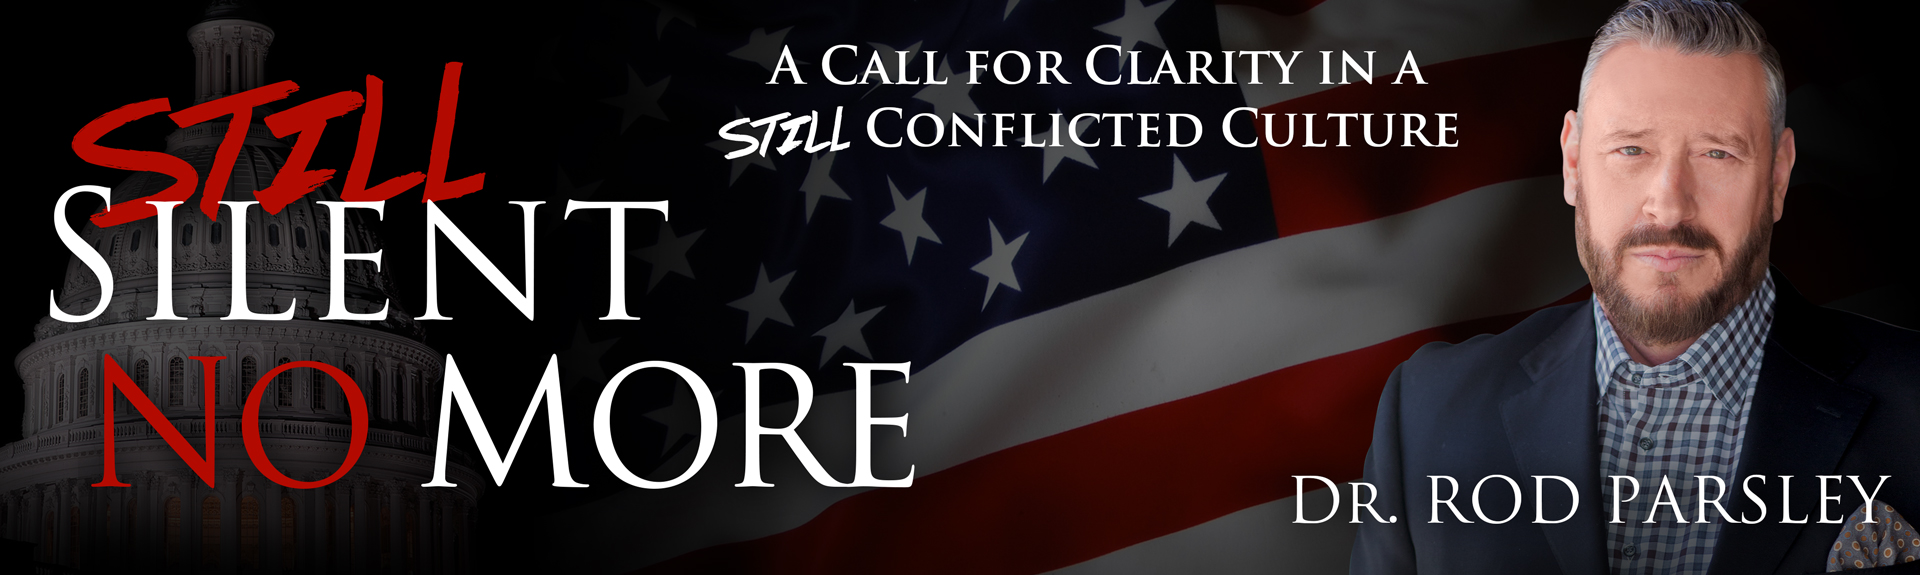 Still Silent No More | A Call for Clarity in a STILL Conflicted Culture | Dr. Rod Parsley